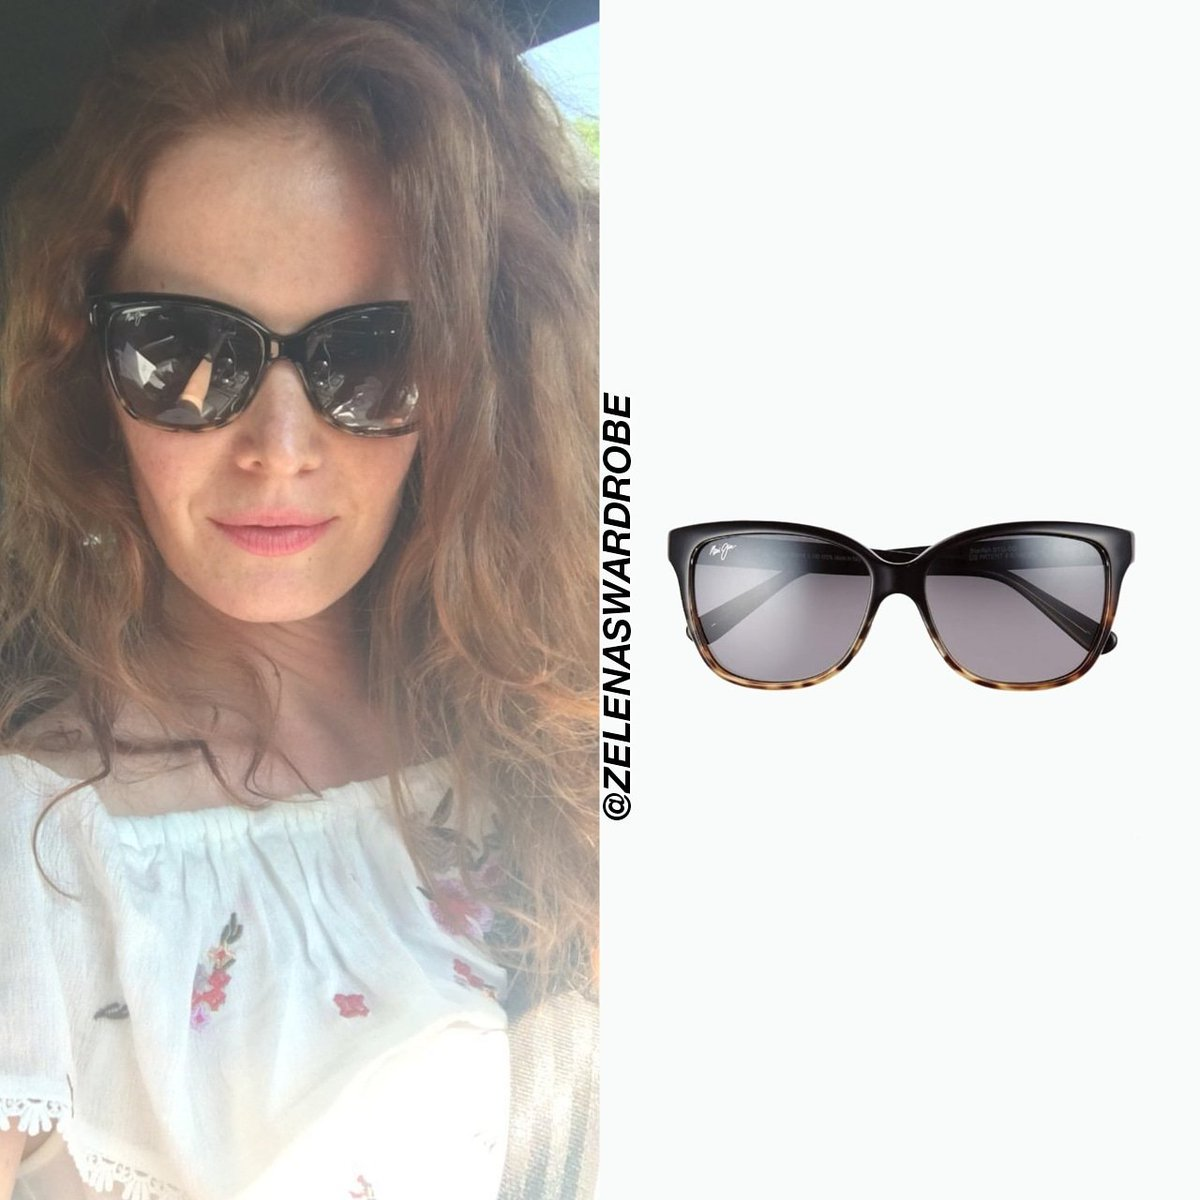 2d7d15458f01 ... wearing Maui Jim Starfish Polarized Fashion Sunglasses in  Black/Tortoise. They are currently sold out on http://www.overstock.com but  were originally ...